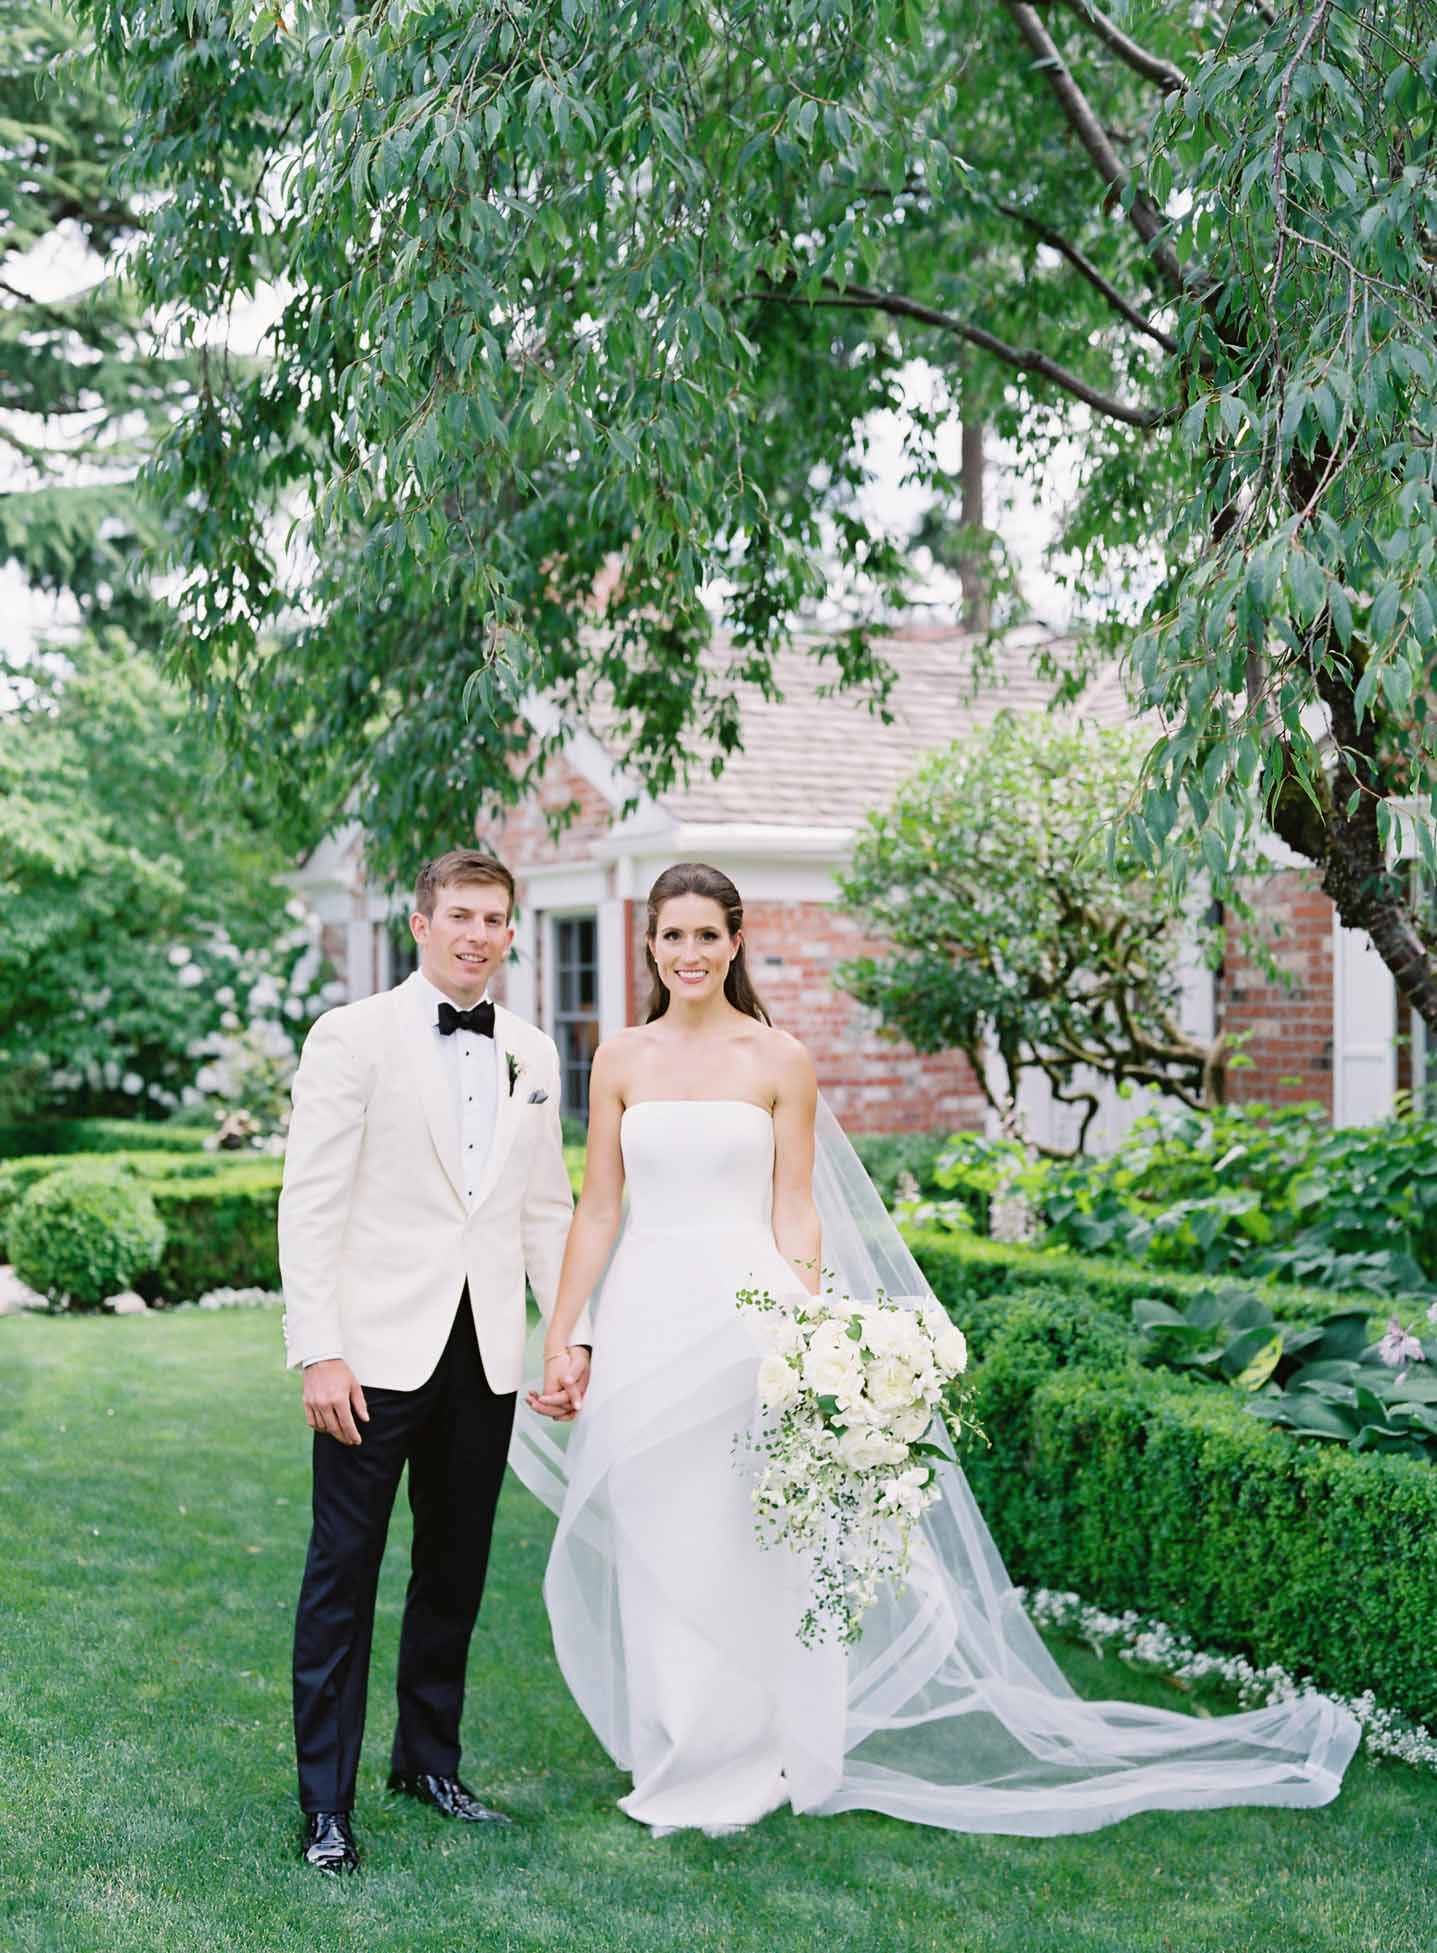 Wedding couple surrounded by greenery in garden, bride holding a cascading bouquet